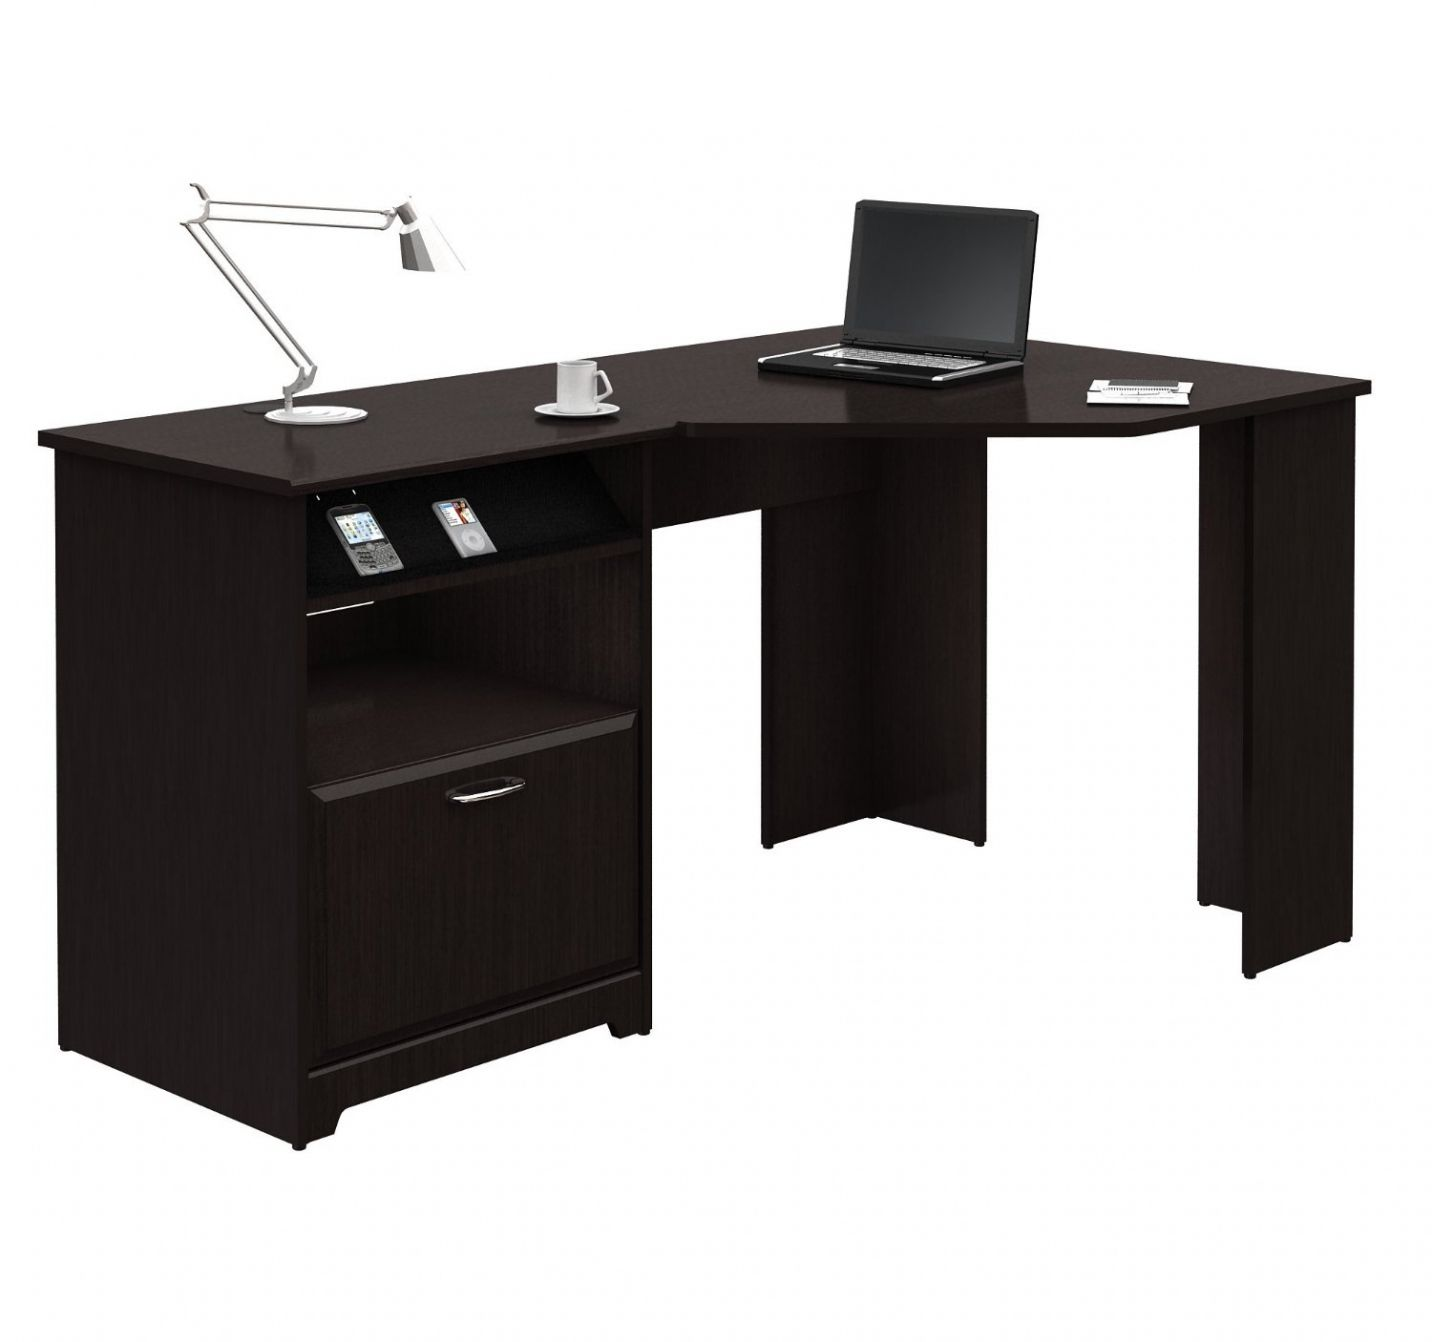 Corner Desk Black Wood Country Home Office Furniture Check More At Http